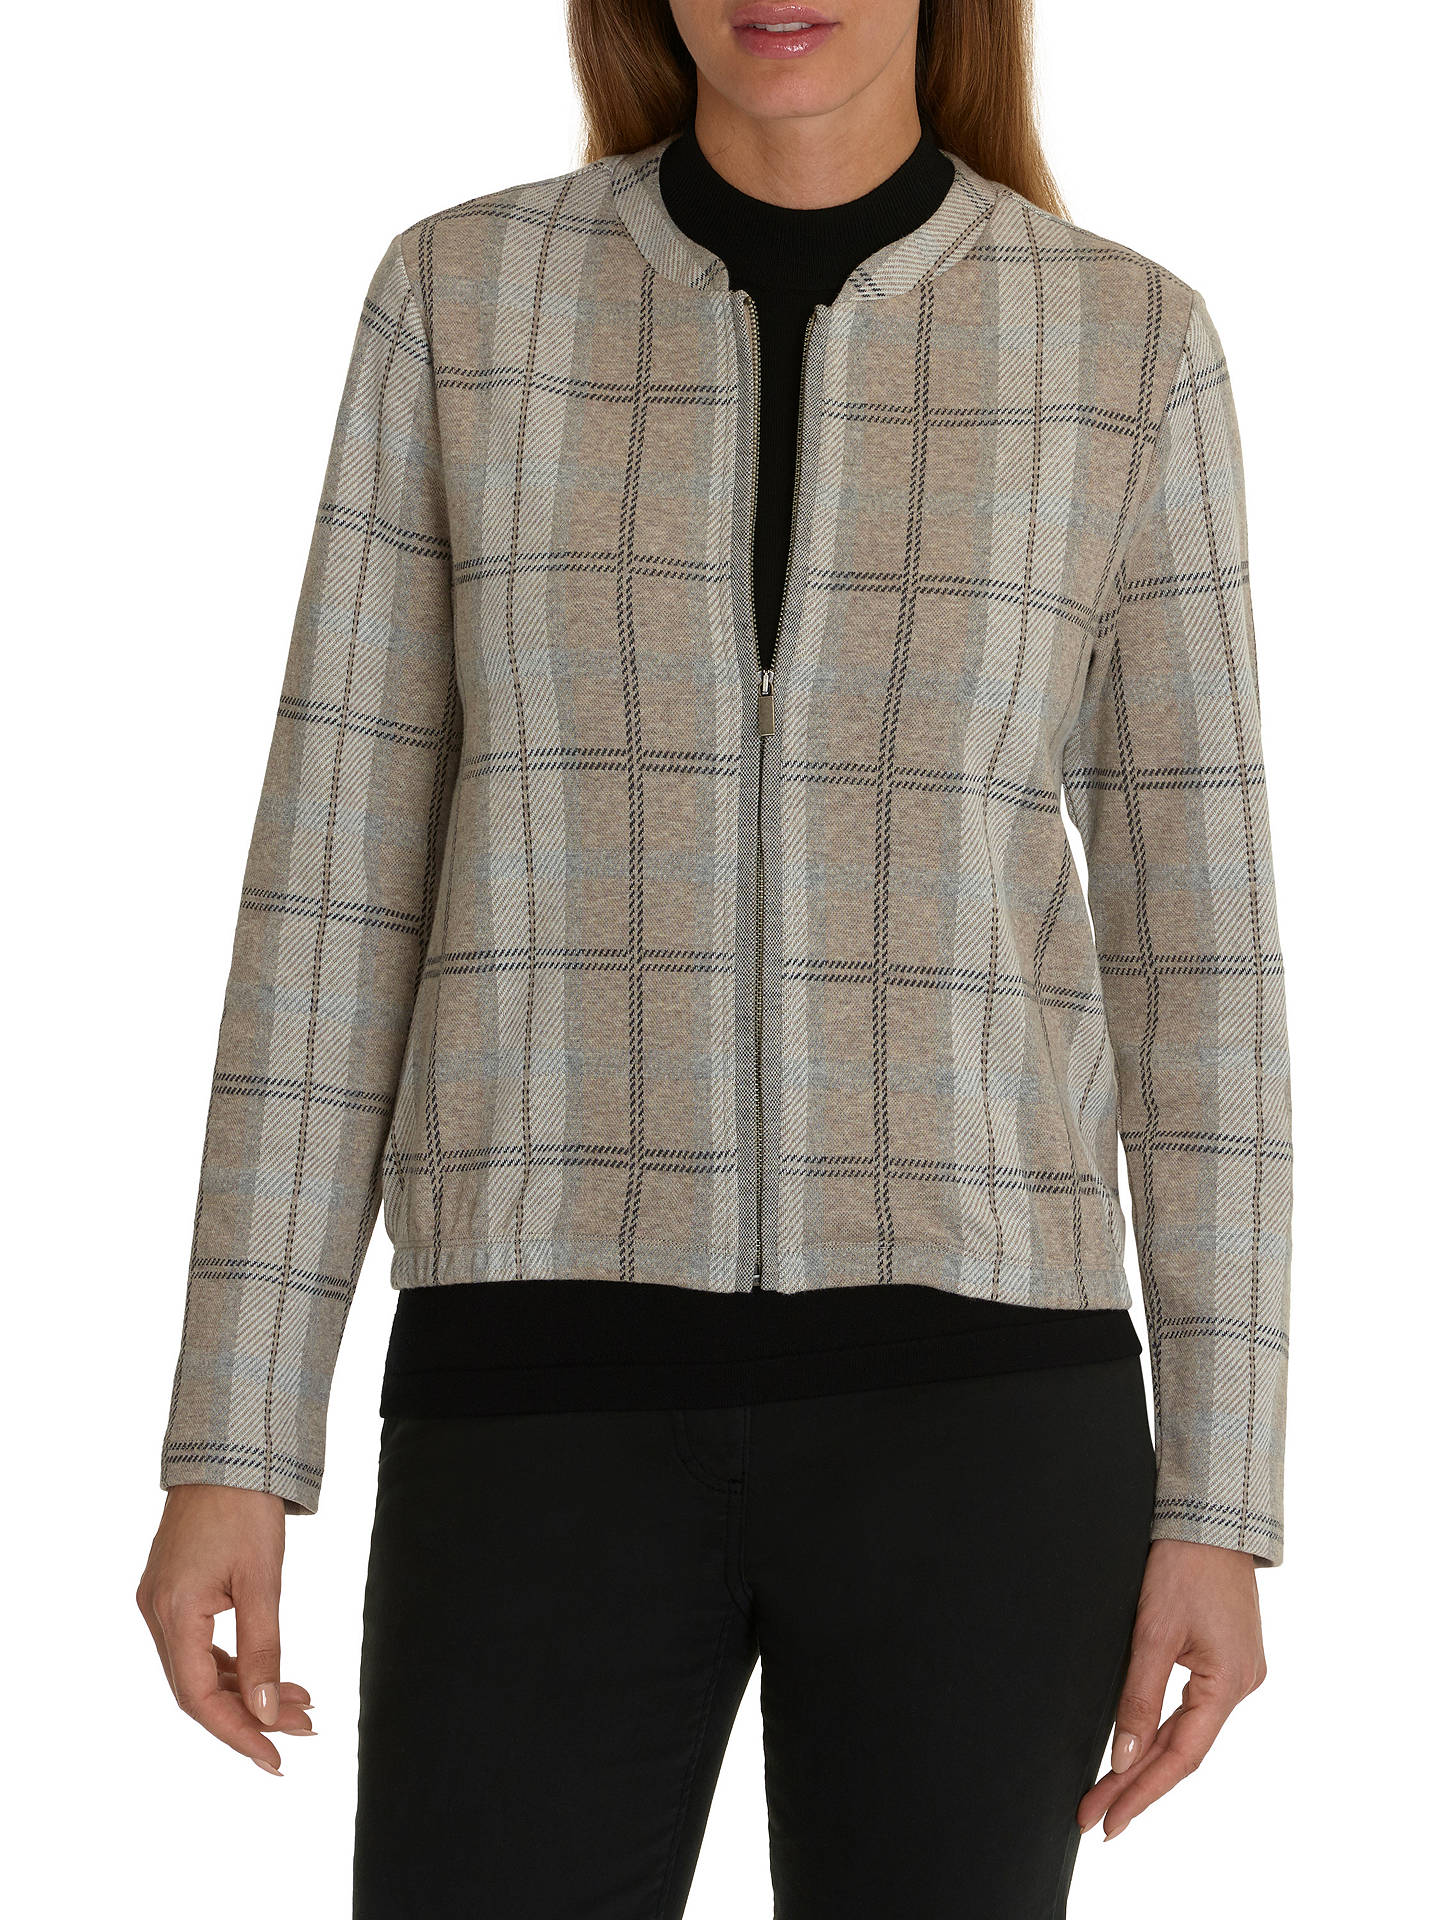 BuyBetty Barclay Check Blouson Jacket, Taupe/Grey, 10 Online at johnlewis.com